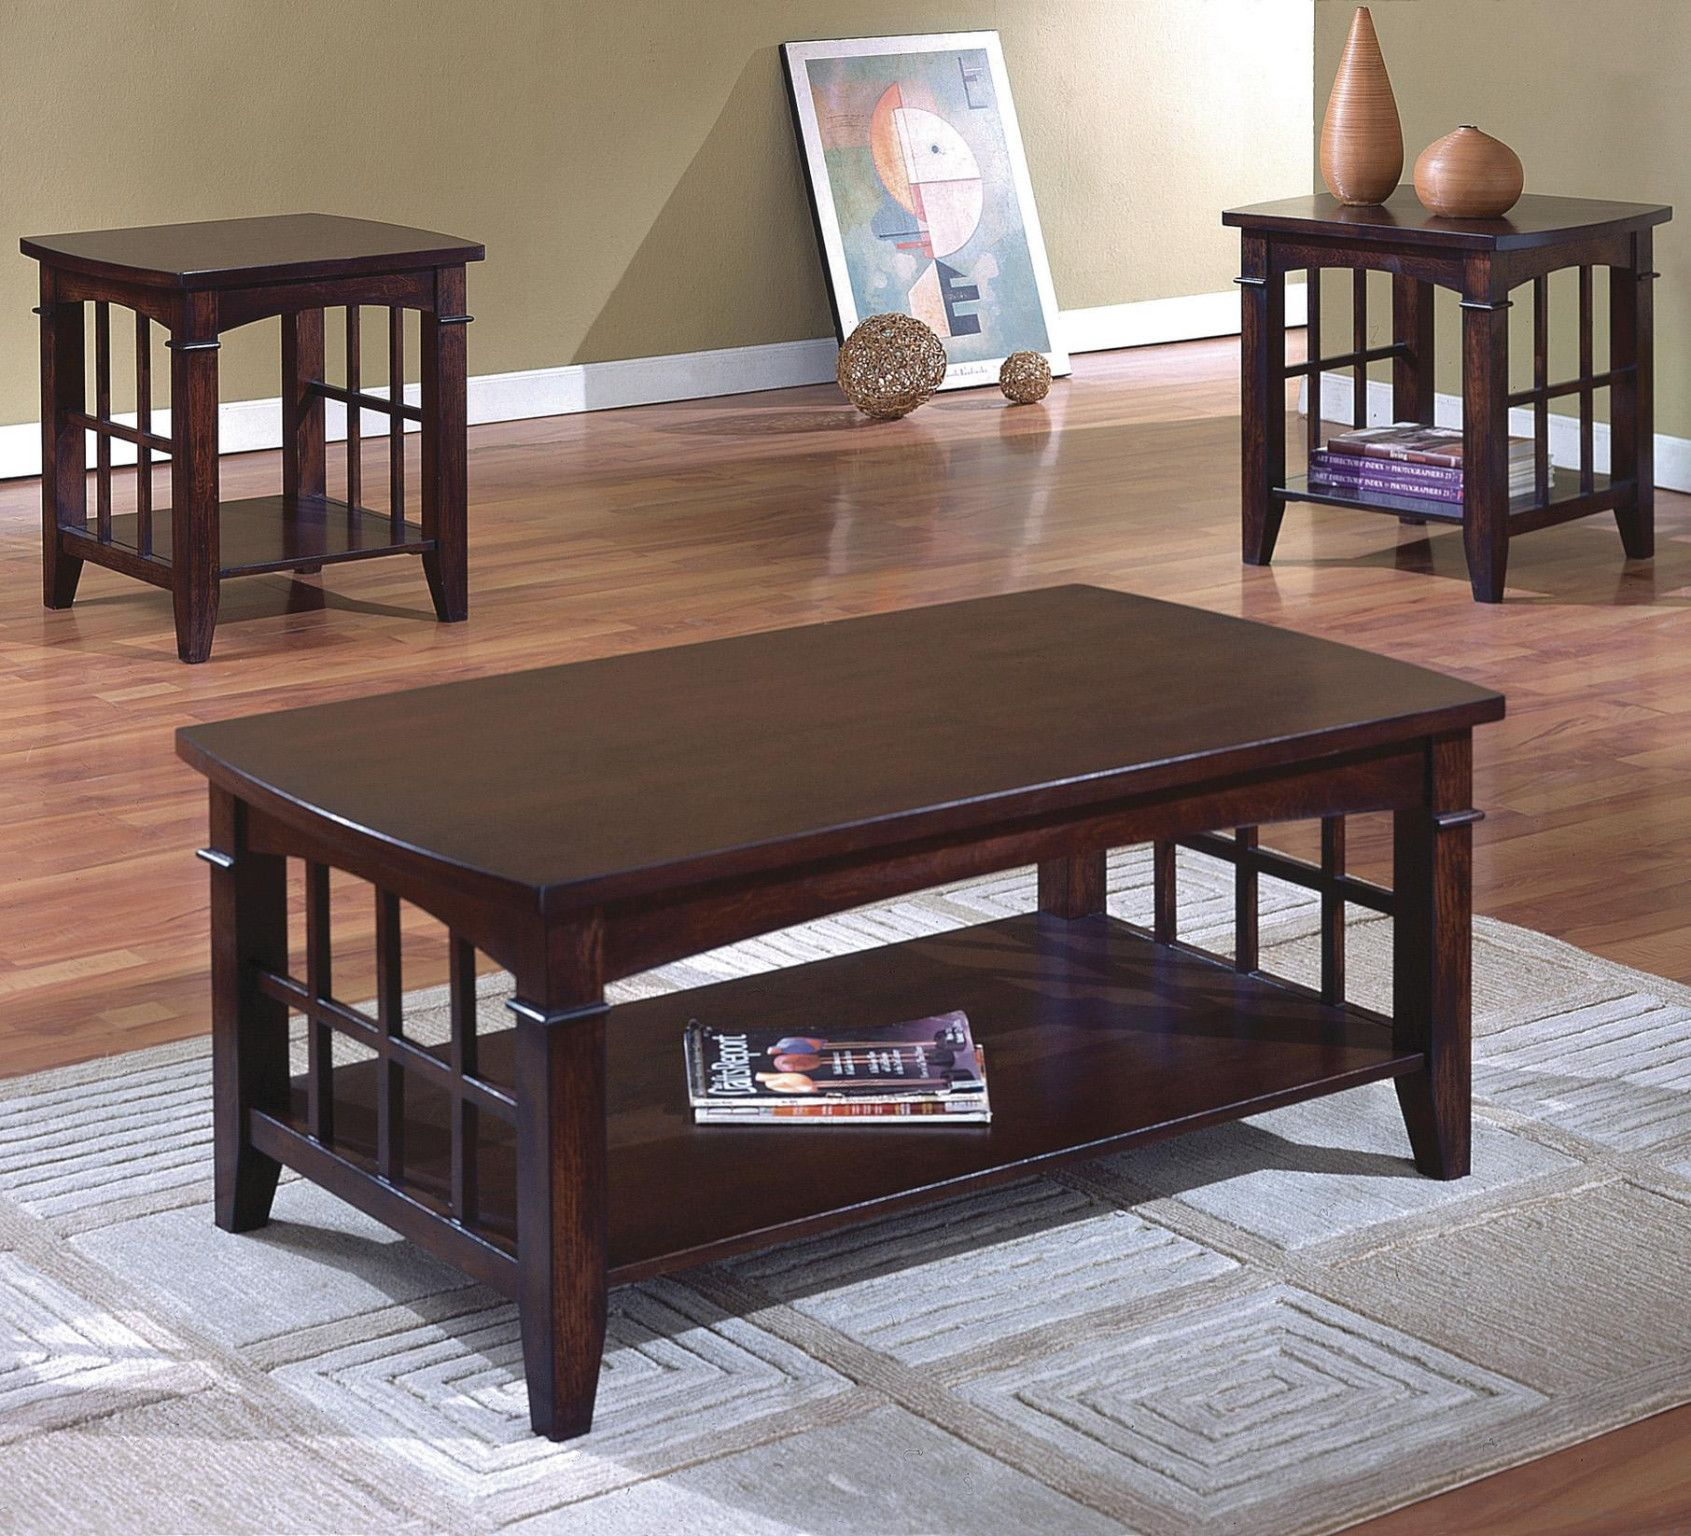 Camino 3 piece table set coffee and 2 end tables 34900 coffee camino 3 piece table set coffee and 2 end tables 34900 coffee table 48 x geotapseo Image collections